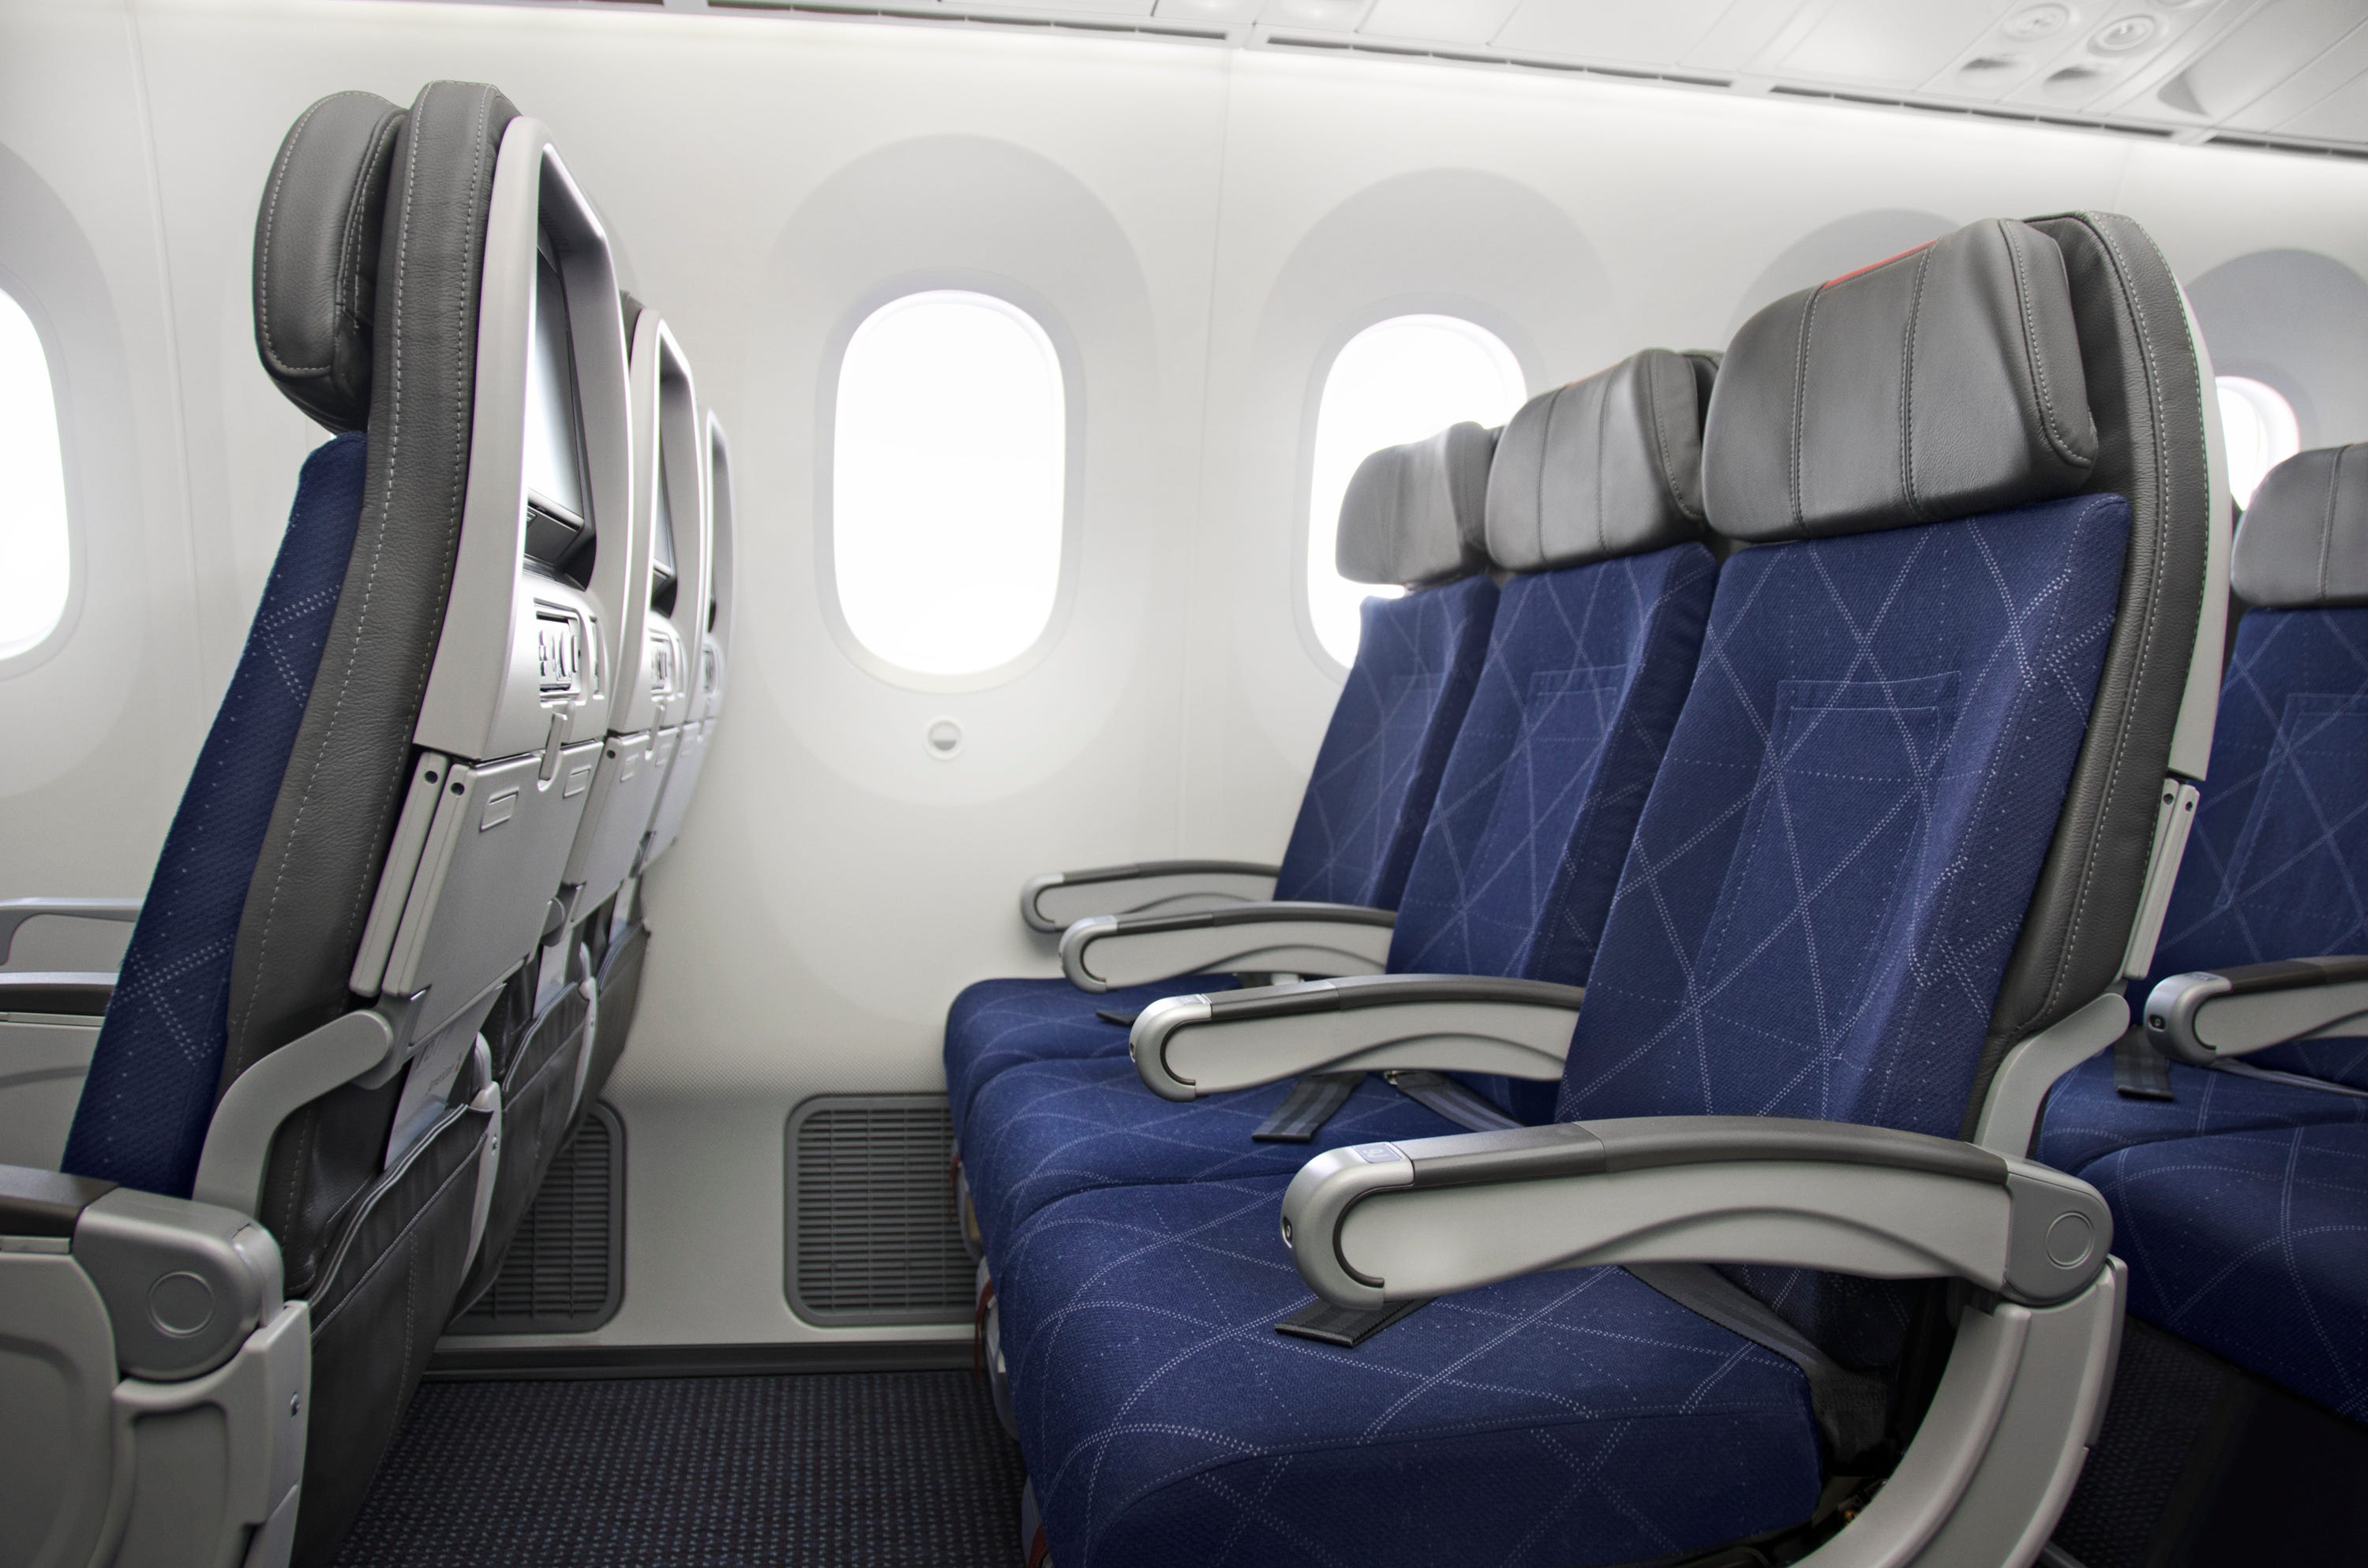 Airline seat standards coming, as safety concerns, passenger complaints mount   USA Today